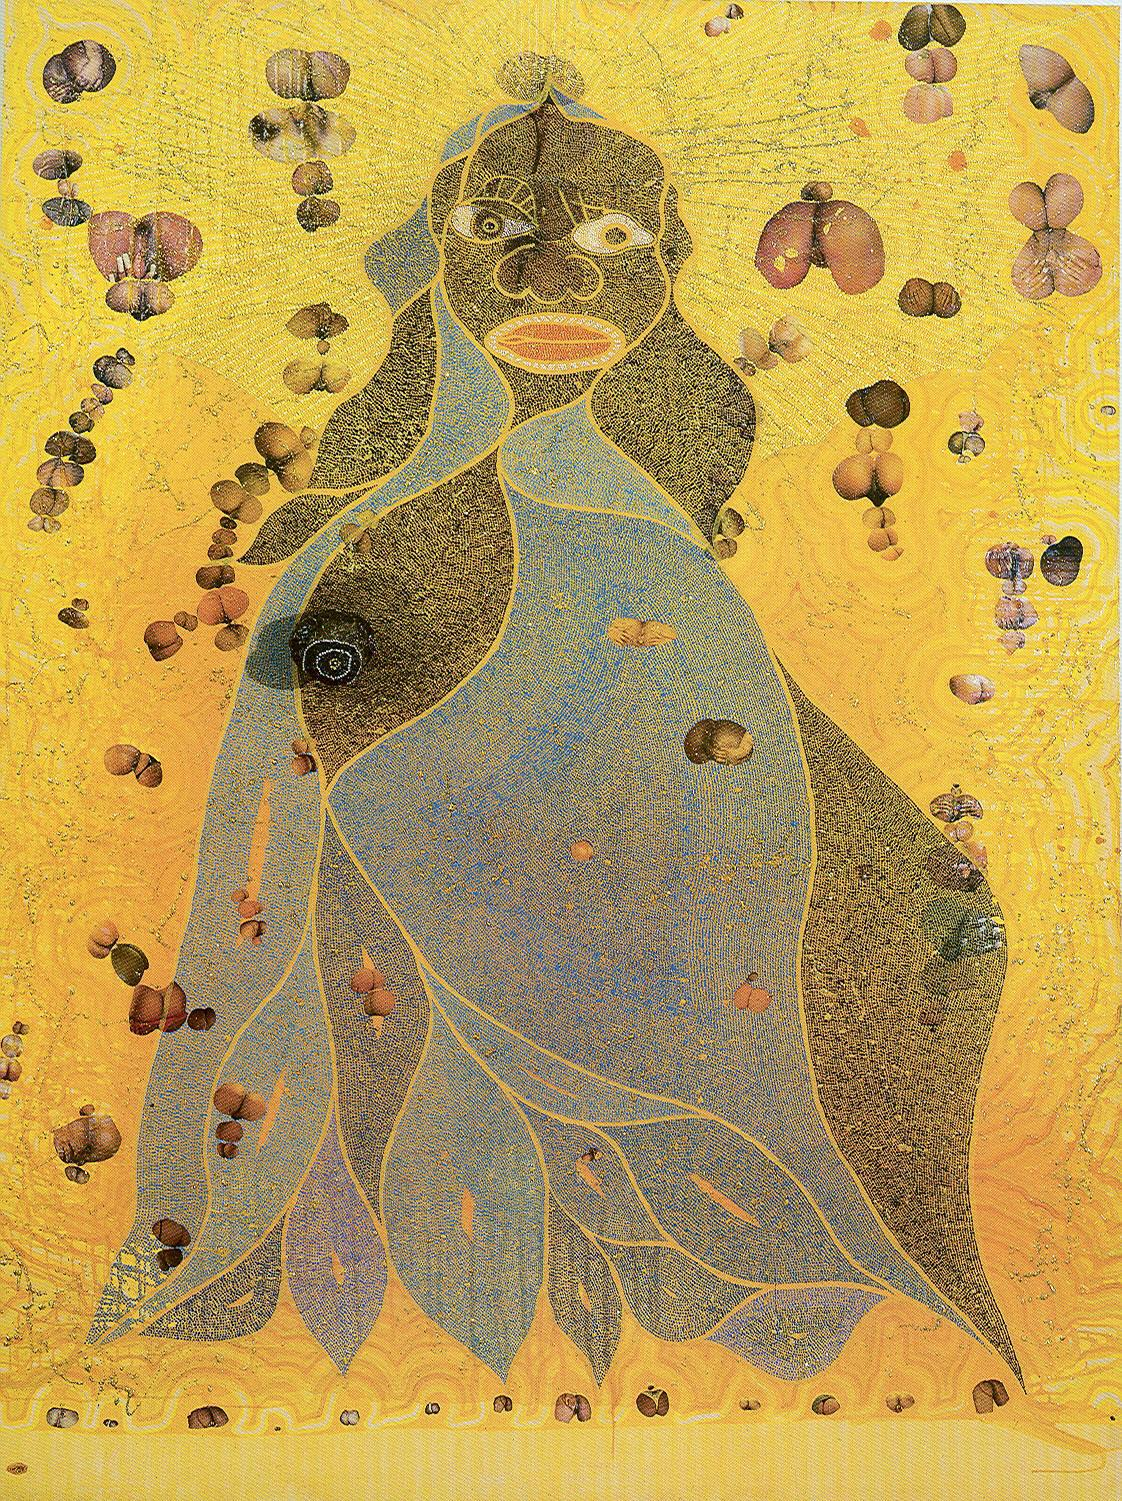 """Artwork of the day:     Ofili - The Holy Virgin Mary  (1996)     The potent mixture of the sacred (Virgin Mary) and the profane (excrement and pornography) became a cause of controversy when the  Sensation  exhibition moved to New York in 1999. The City of New York and Mayor Rudolph Giuliani brought a court case against the  Brooklyn Museum  , with Giuliani describing the exhibition of Ofili's work as """"sick"""" and """"disgusting"""". Giuliani attempted to withdraw the annual $7 million City Hall grant from the museum, and threatened it with eviction.      Many expressed outrage, but few people asked him why he rendered it as he did."""